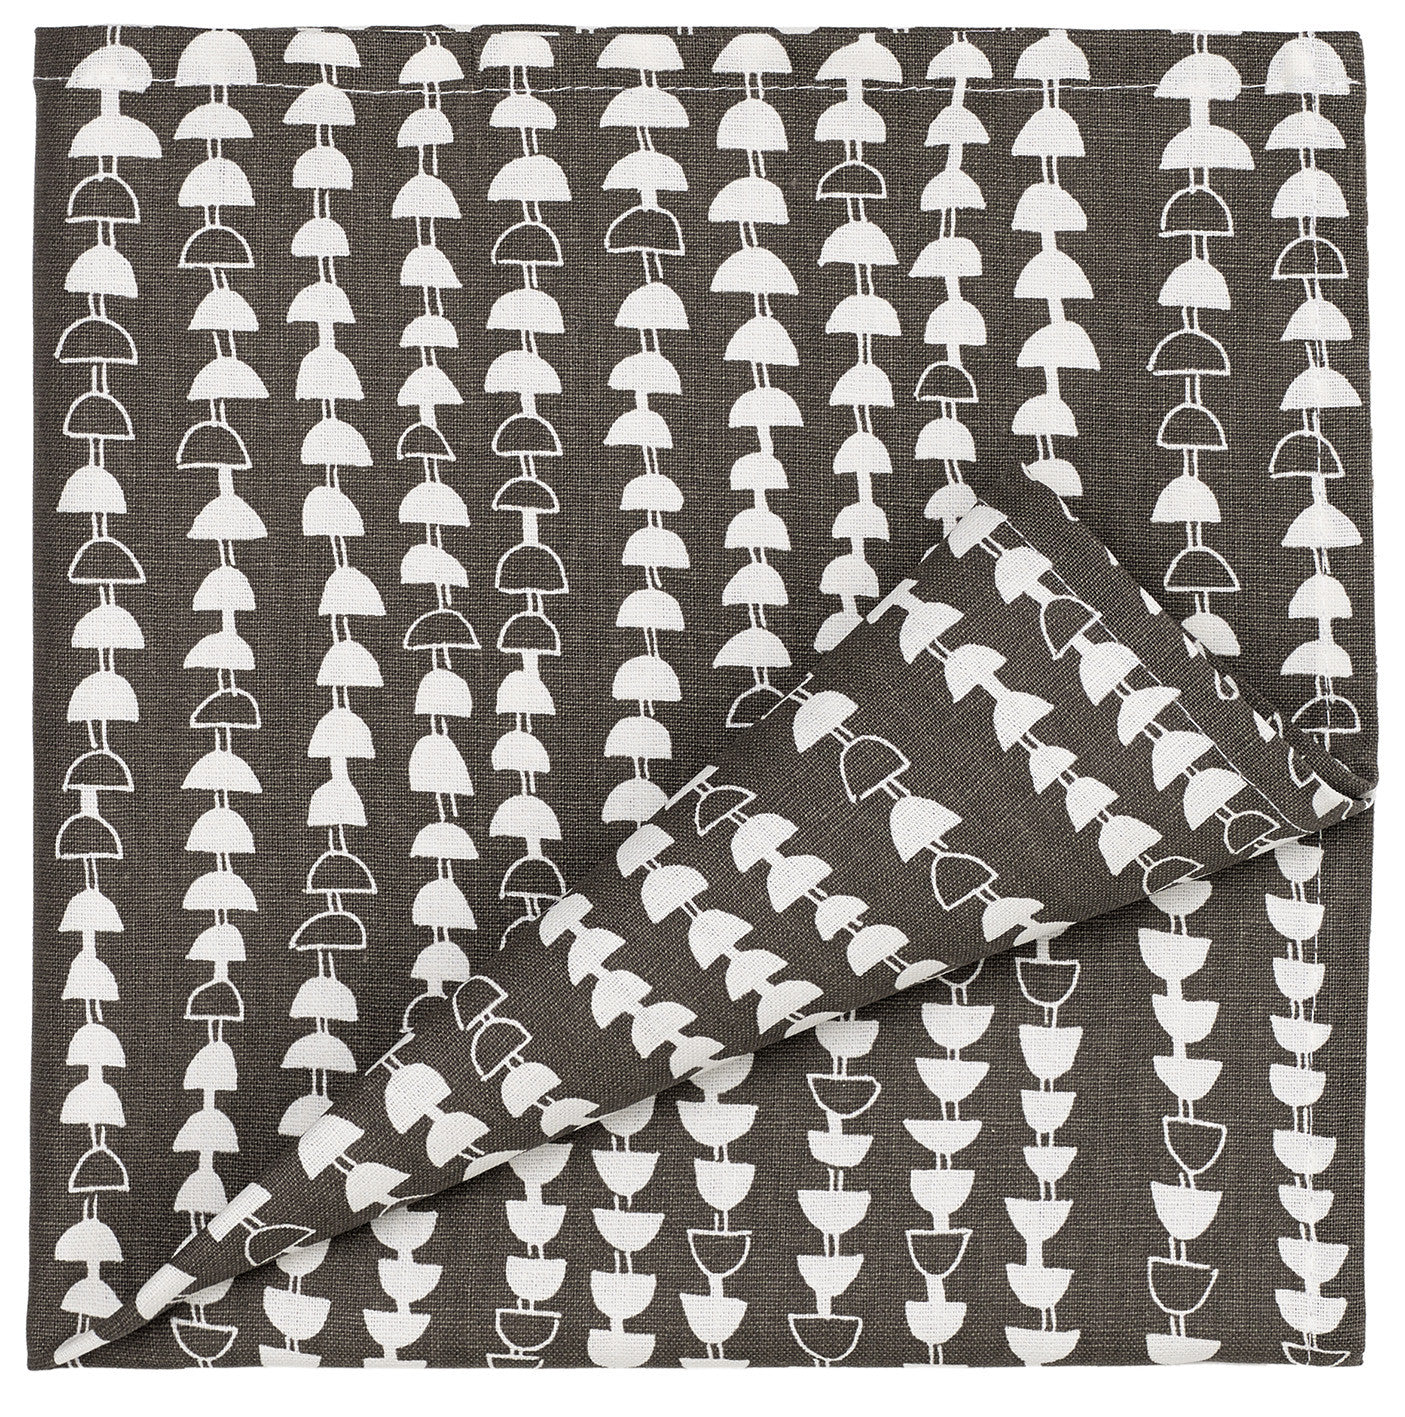 Hopi Pattern Cotton Linen Napkins - Dark Stone Grey